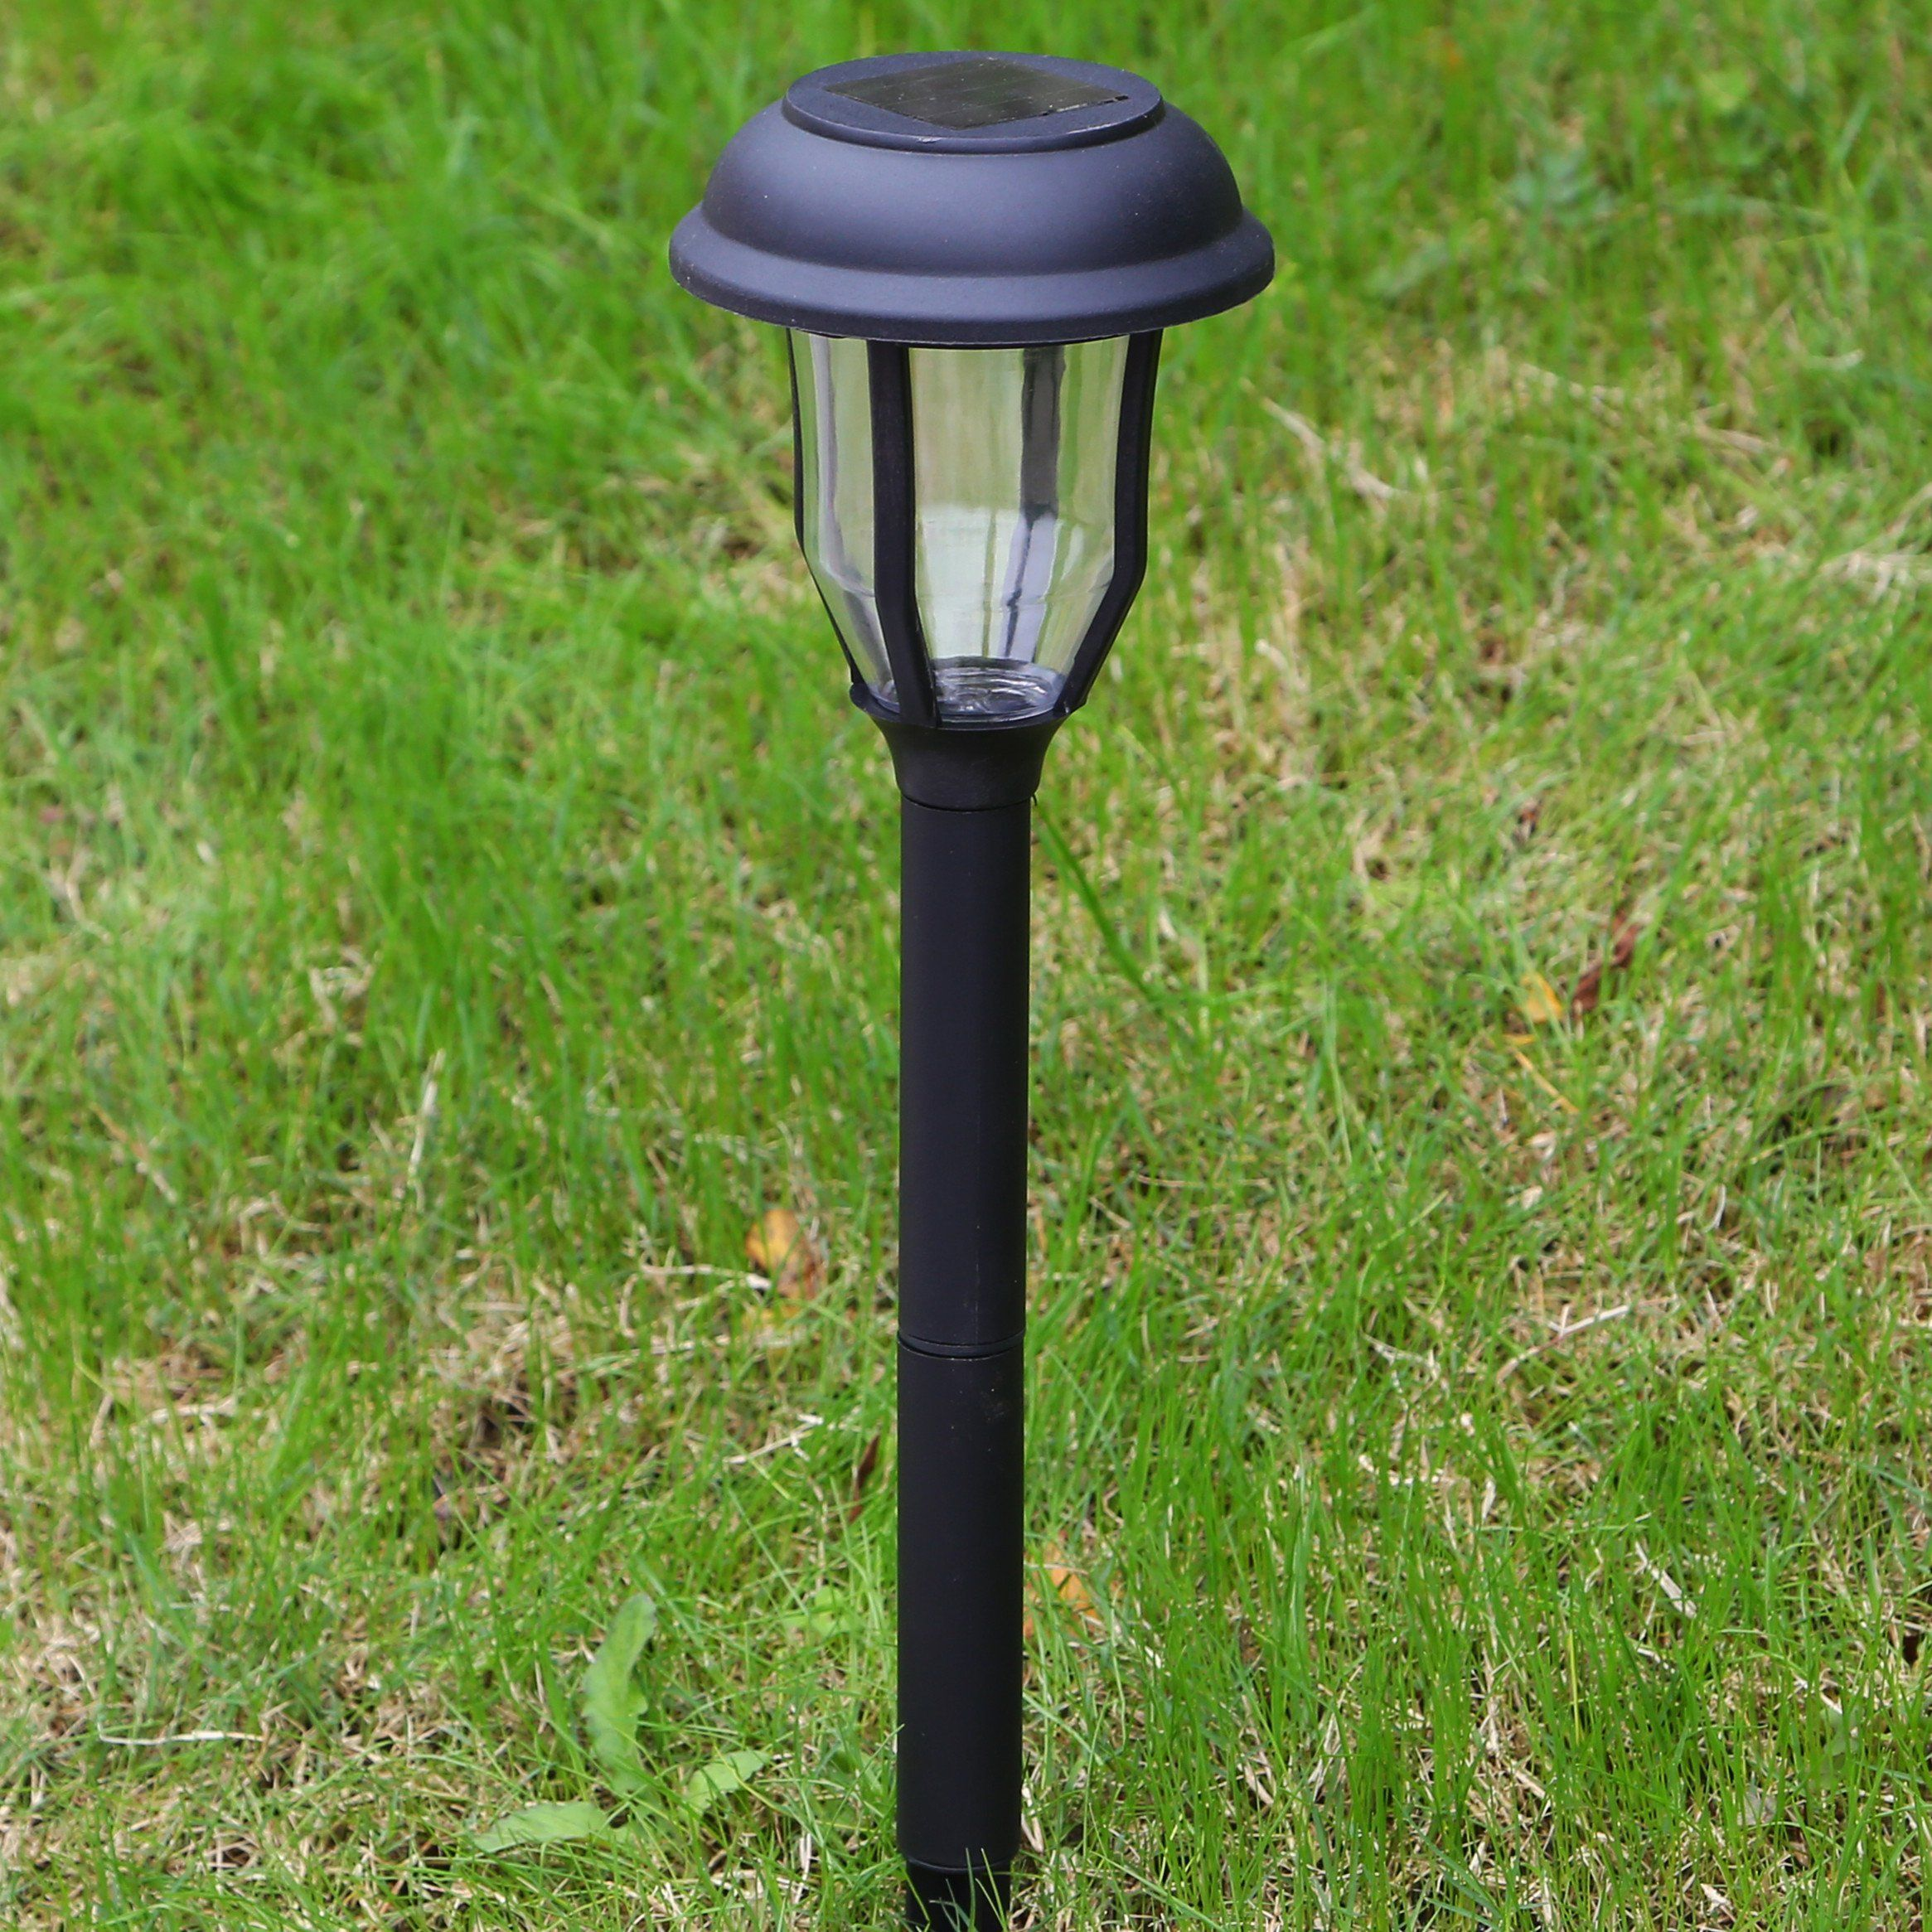 Solar Pathway Lights Outdoor Garden Path Decorative Stake Light Dual Color Led Landscape Home Decor Sogrand Waterproof Bright Yard Decorations Stakes For